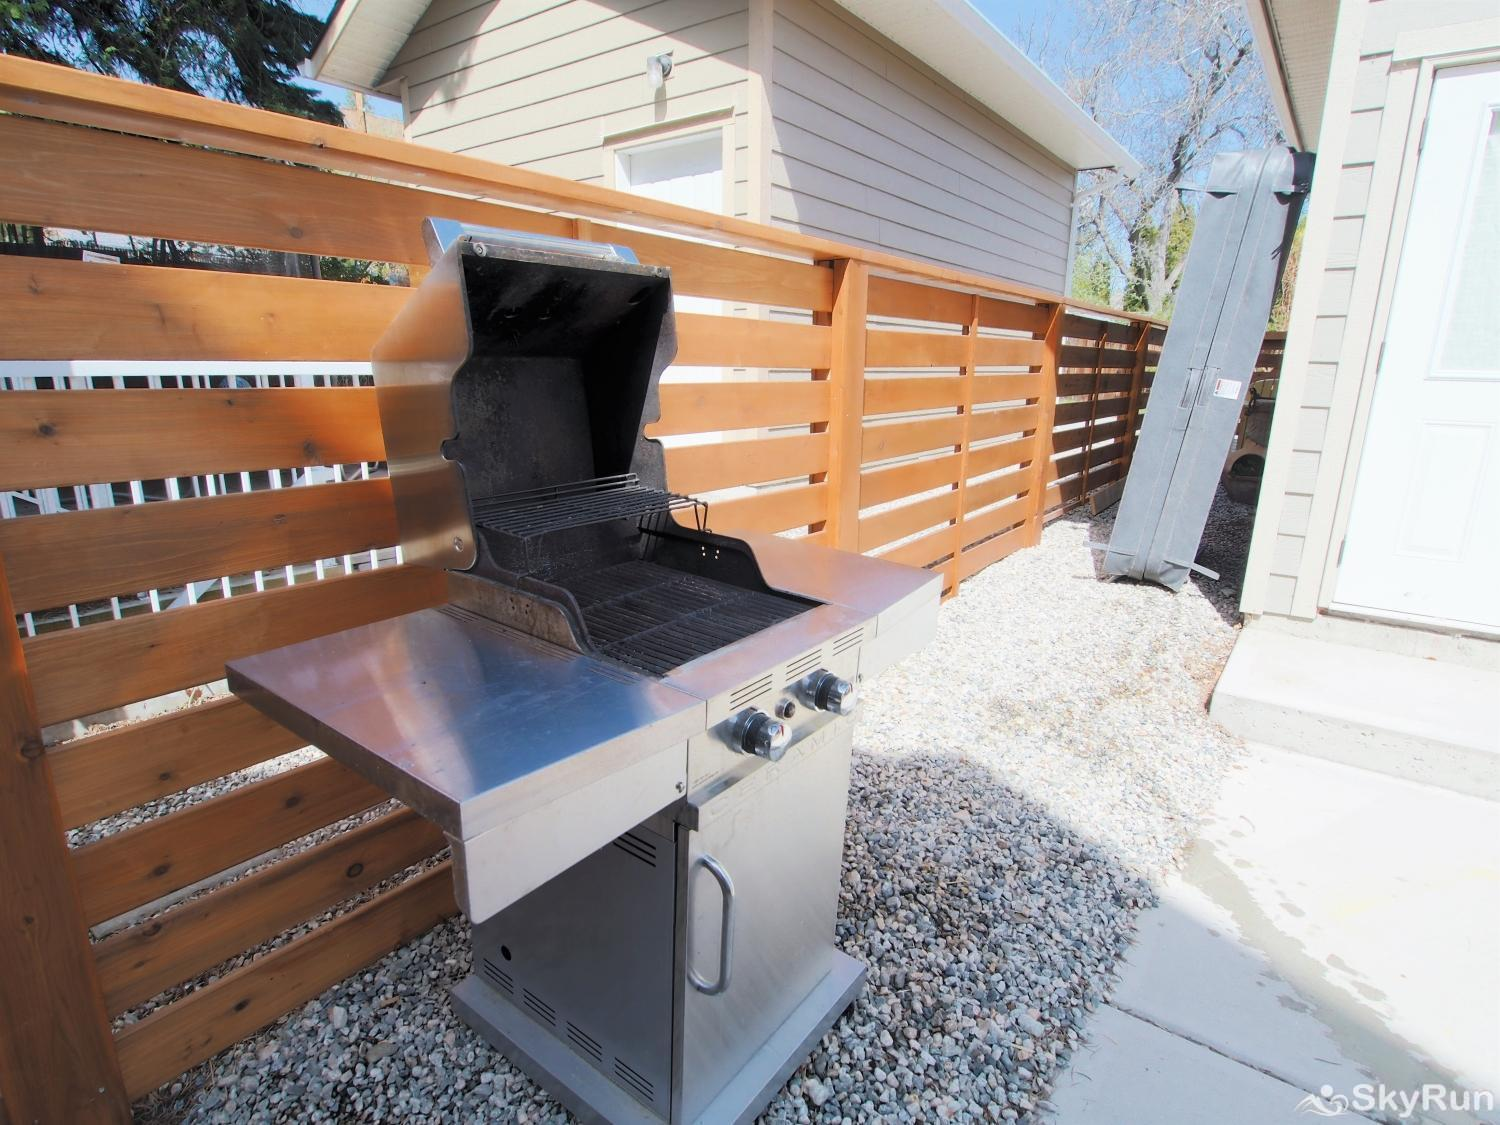 Old Summerland 4 bedroom townhouse Outdoor two burner propane BBQ ready to go for your use